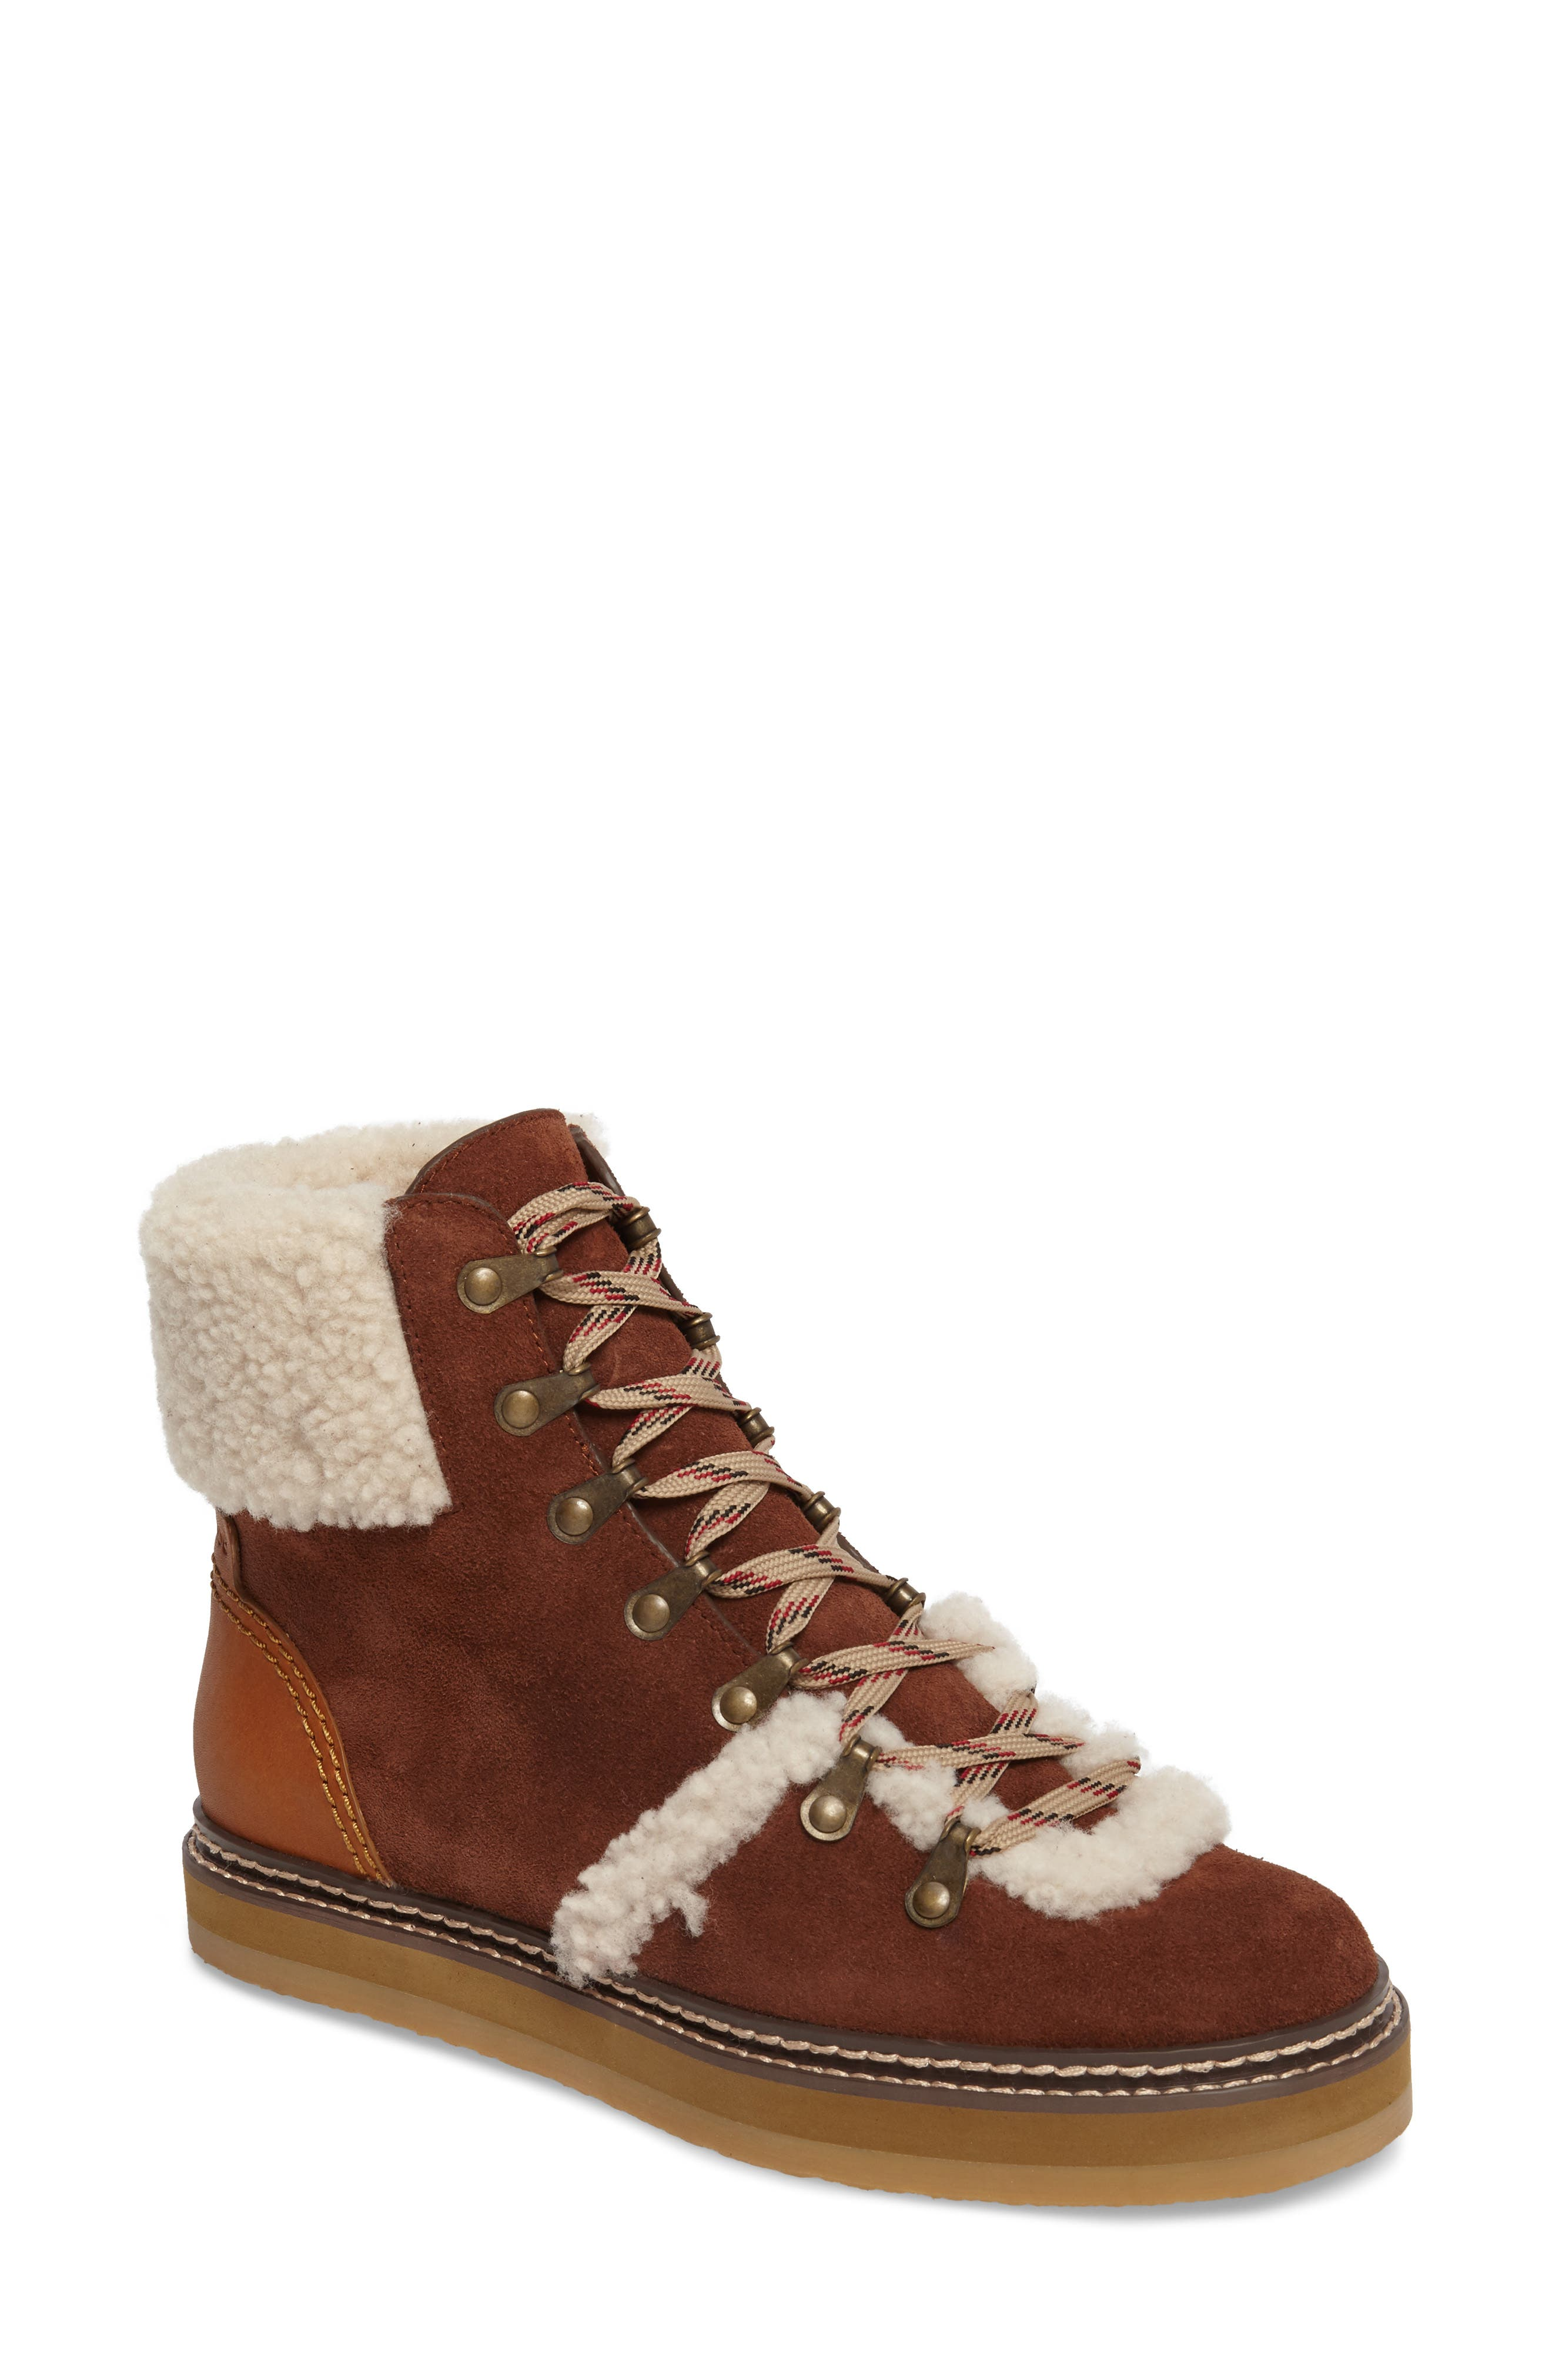 Main Image - See by Chloé 'Eileen' Genuine Shearling Boot